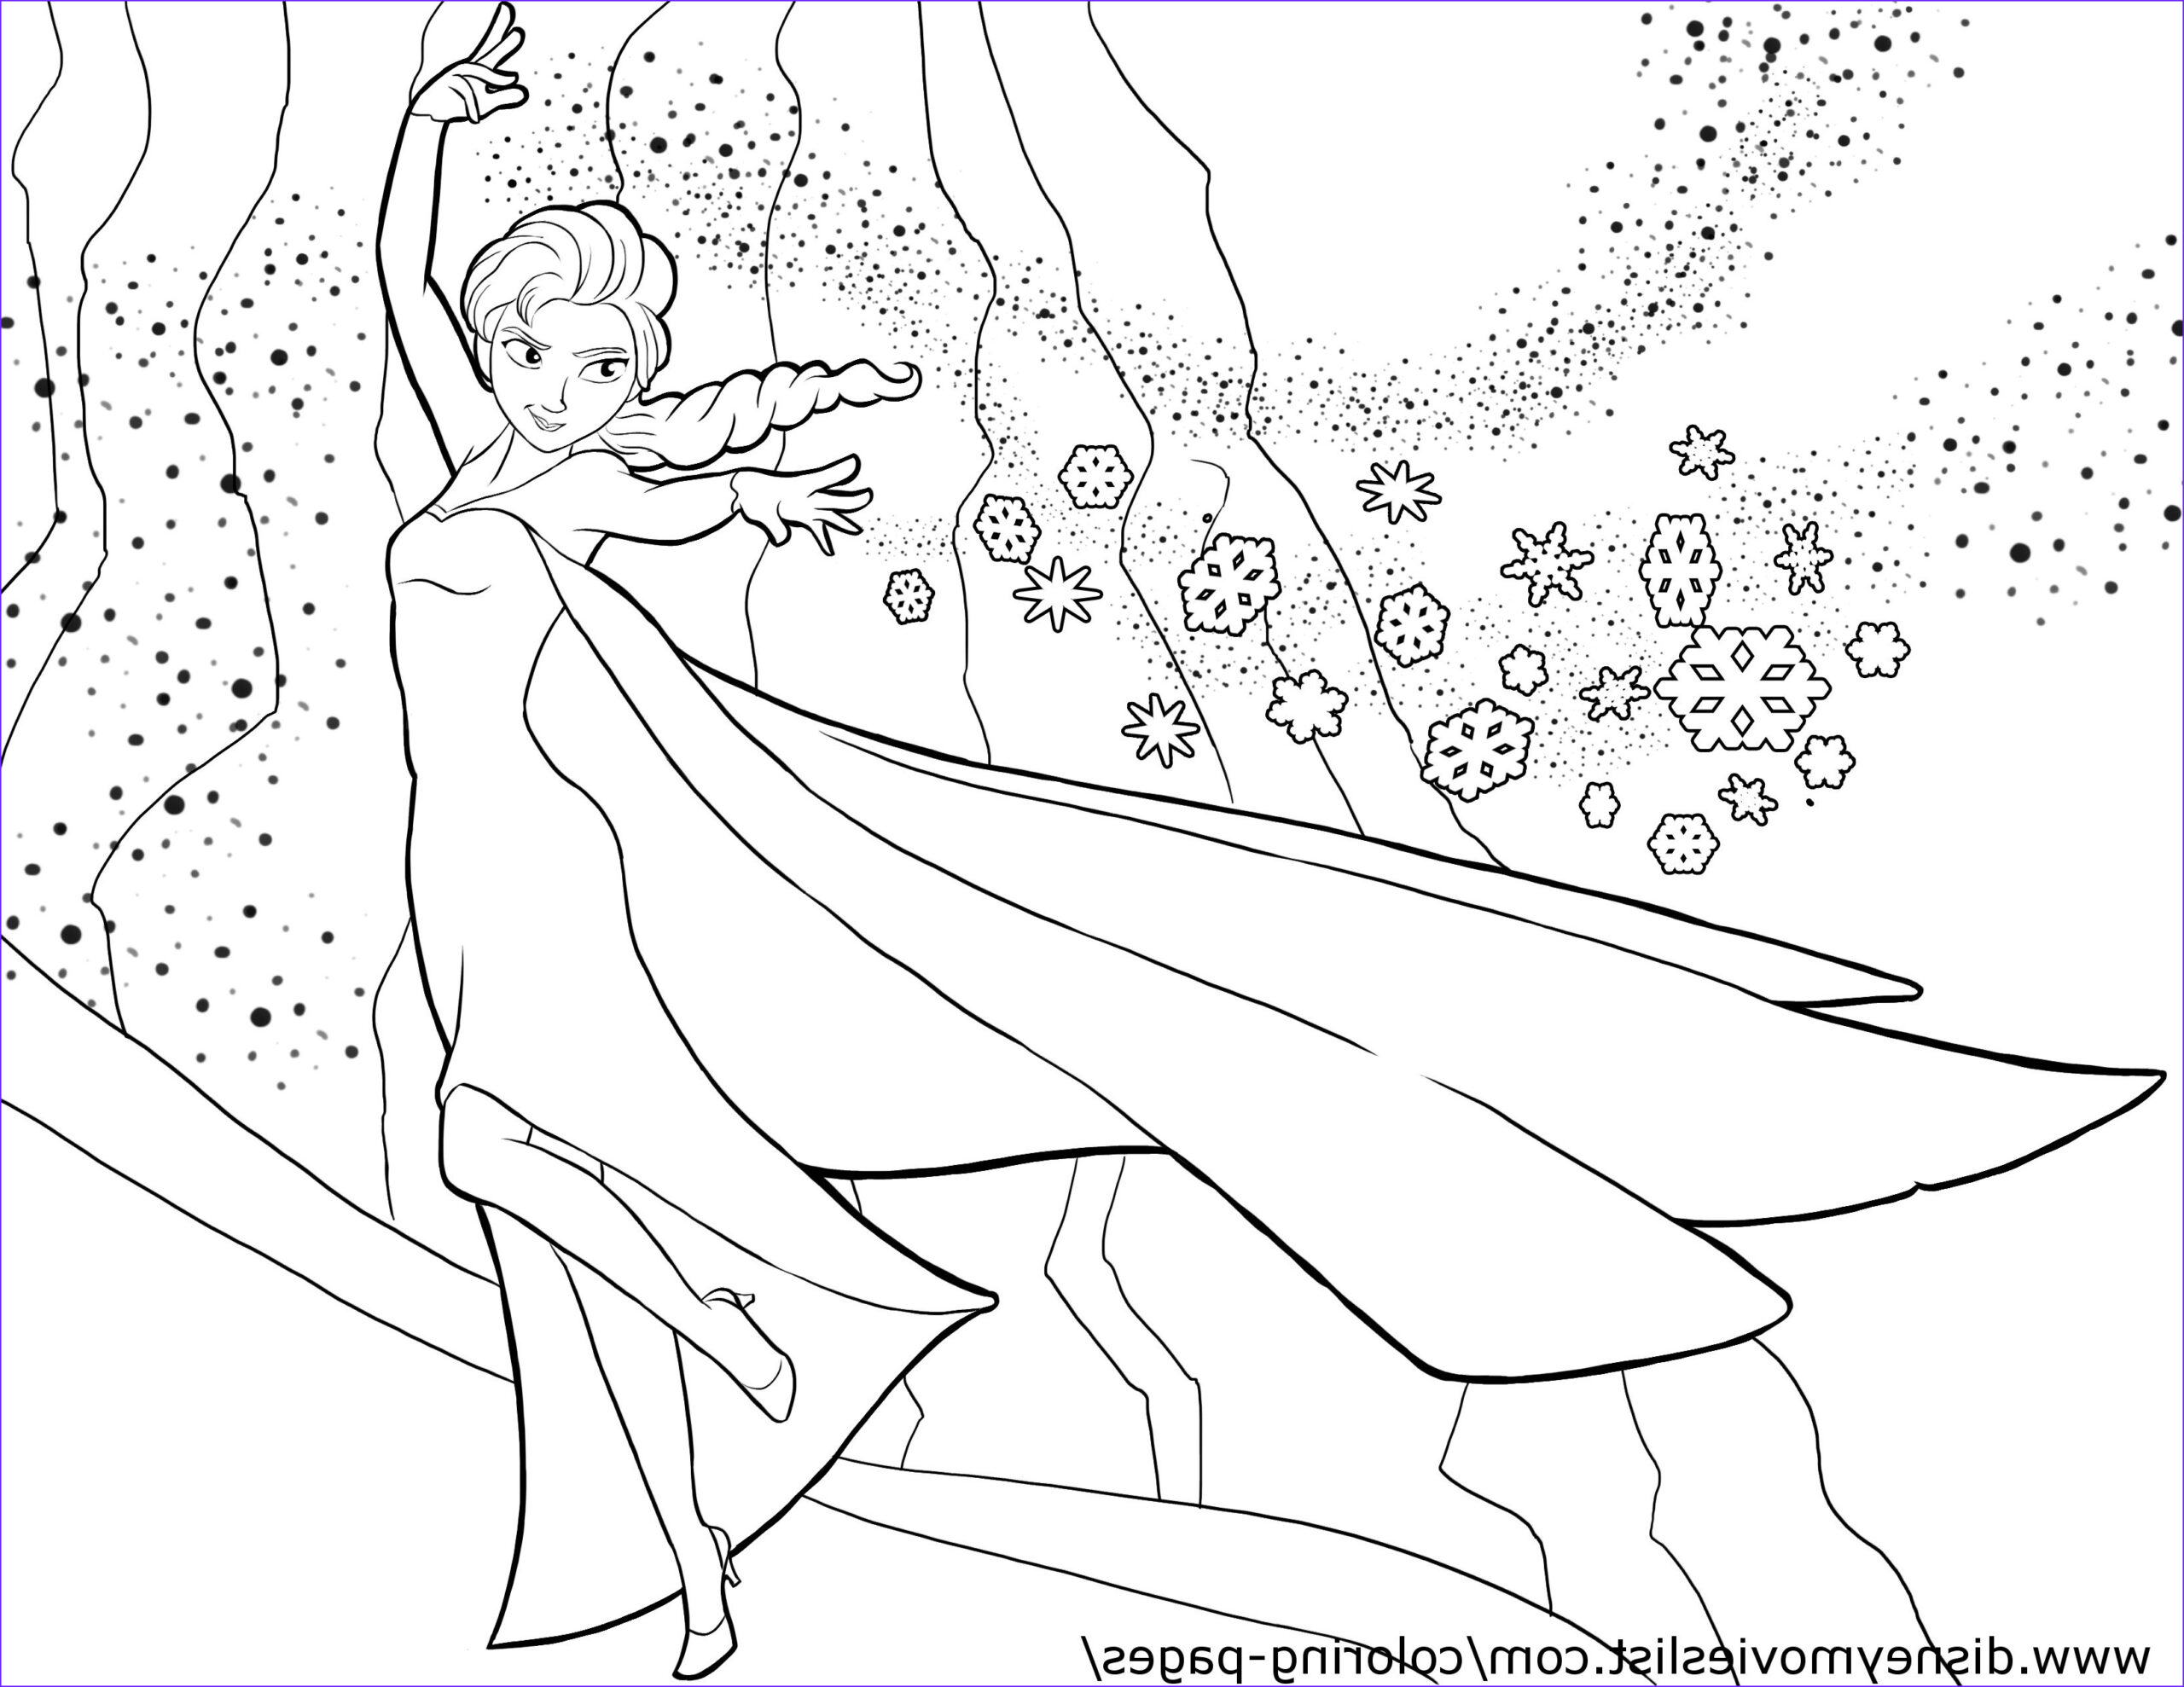 Disney Frozen Coloring Pages Cool Collection Disney Frozen Coloring Pages Lovebugs and Postcards